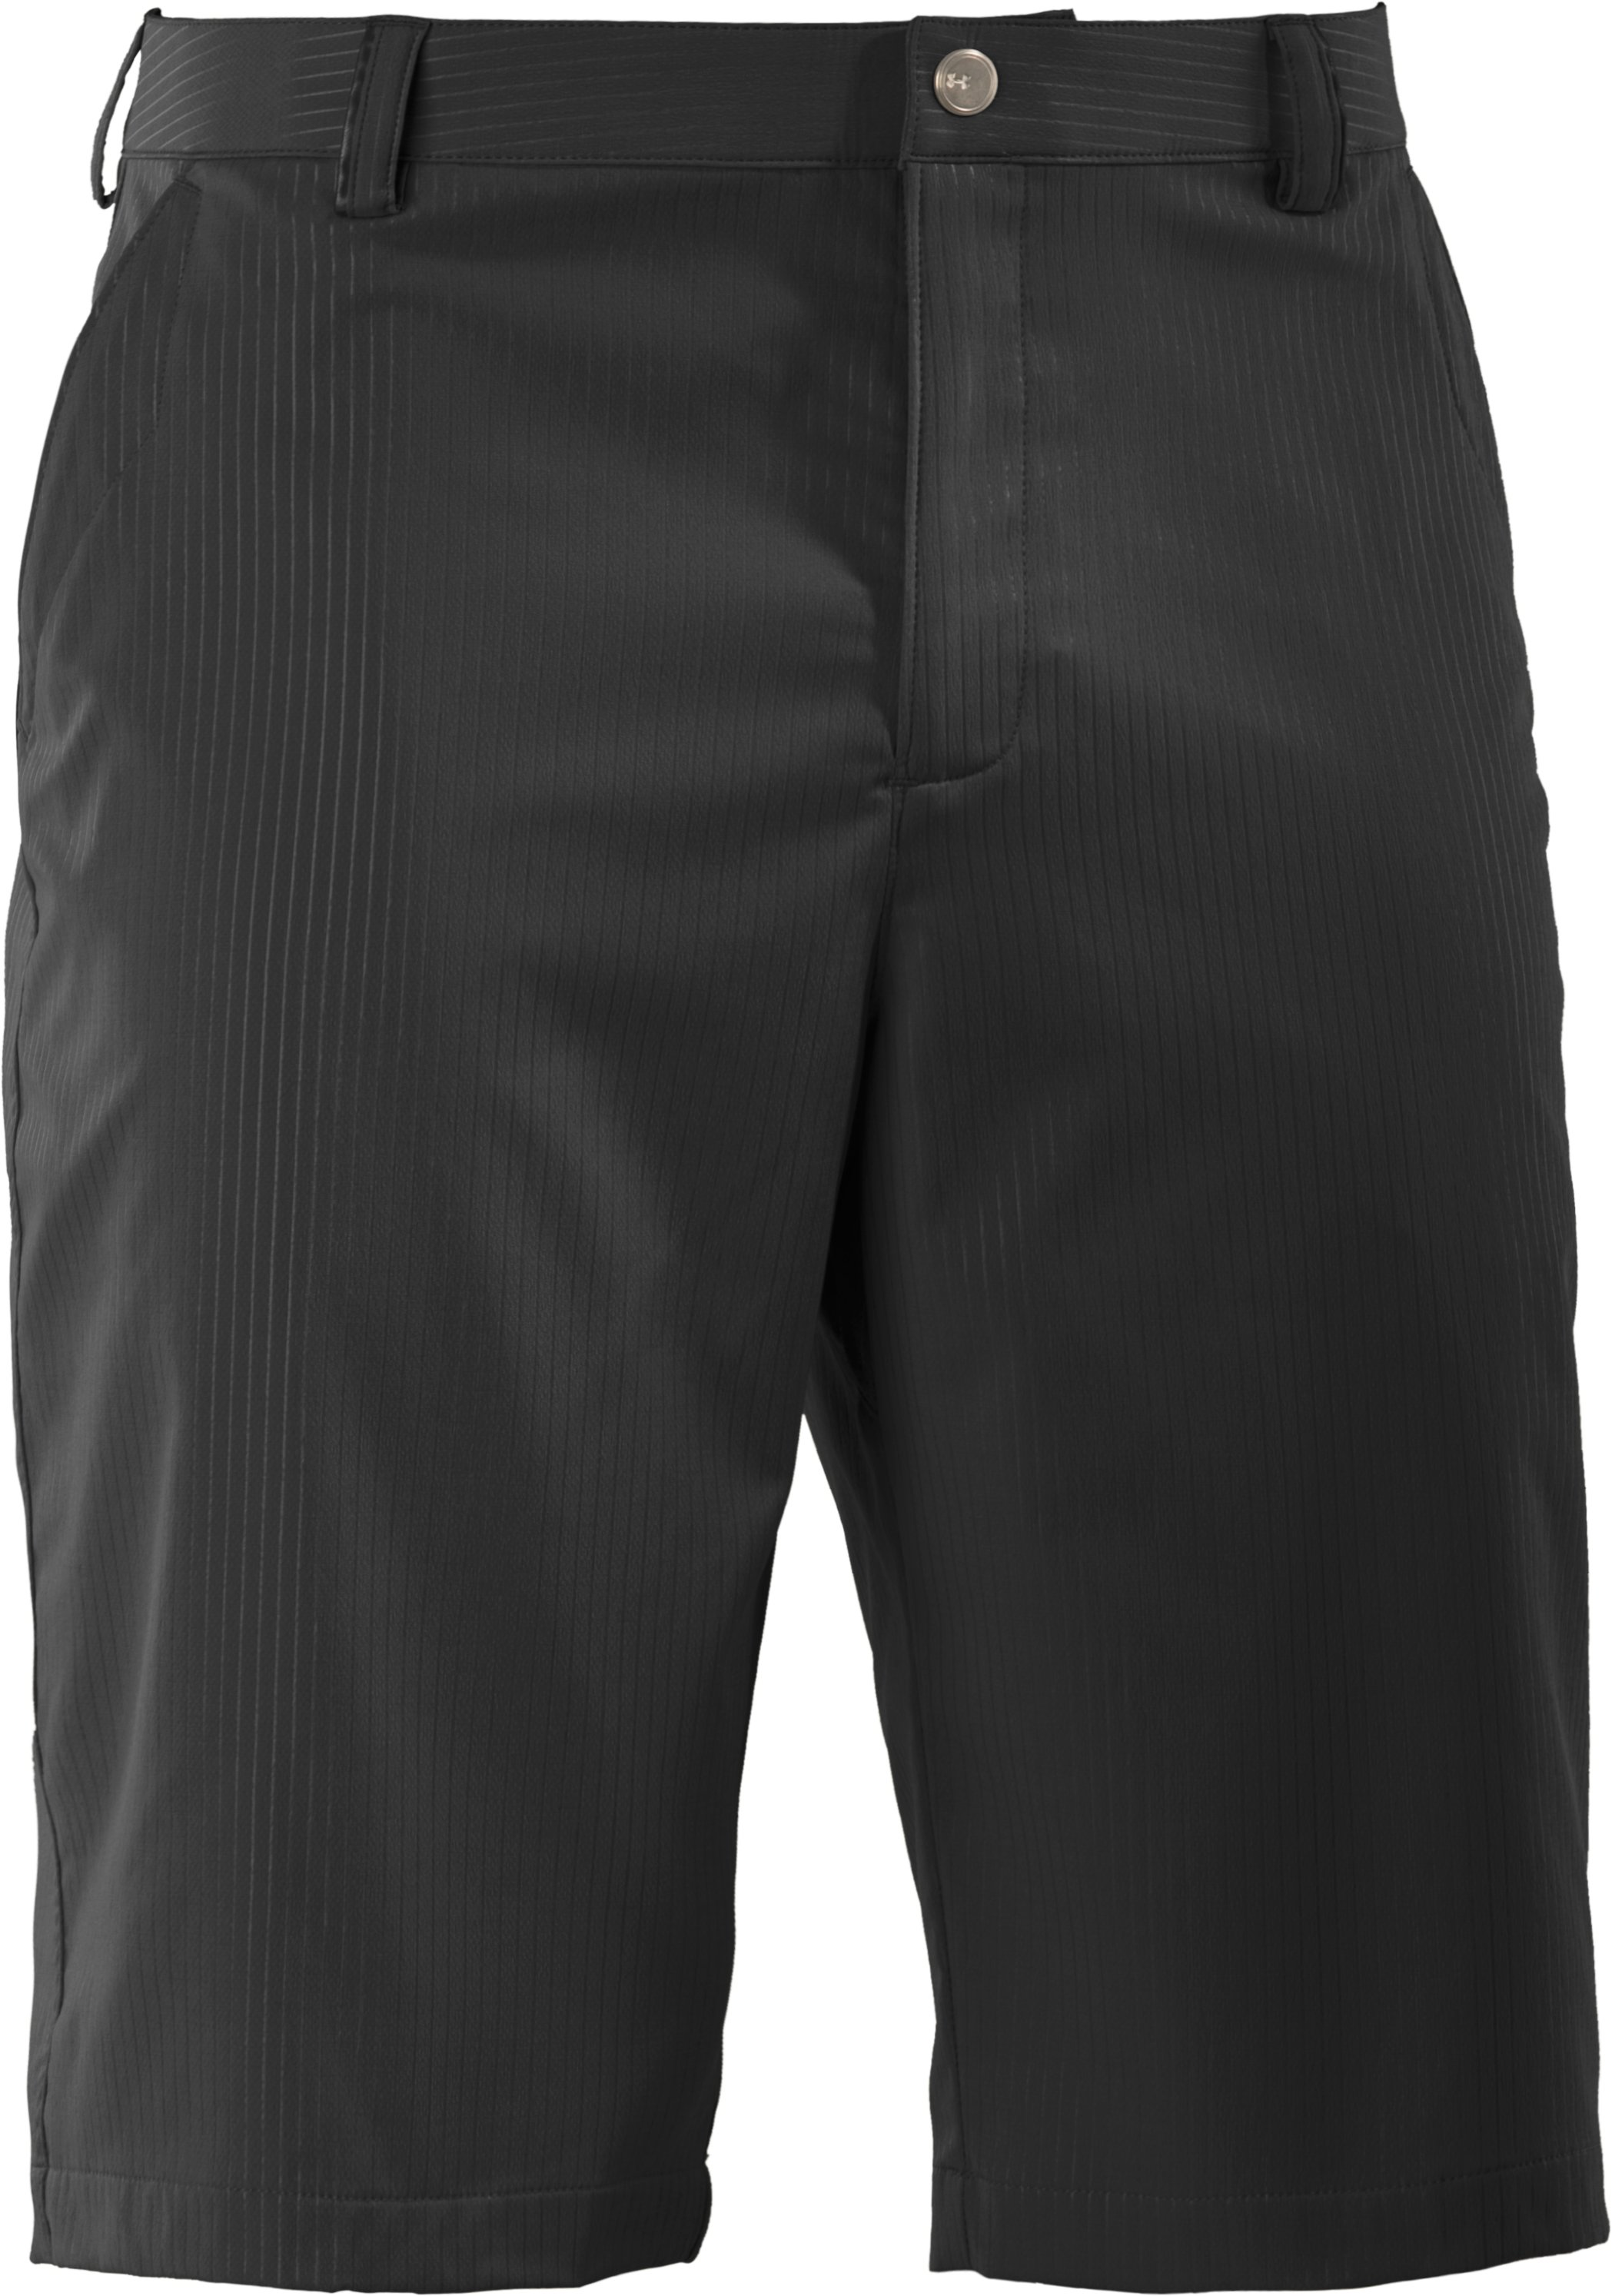 Men's coldblack® Embossed Shorts, Black